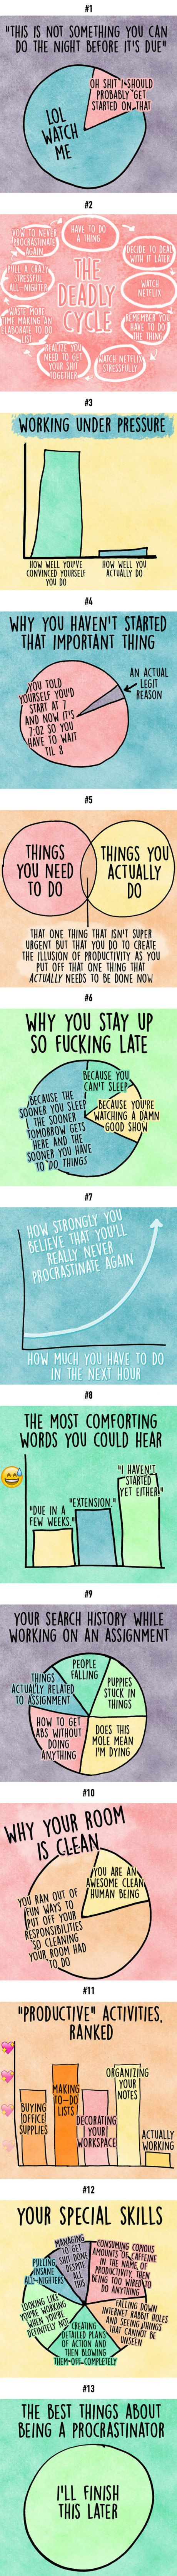 If you're a procrastinator you'll understand these charts